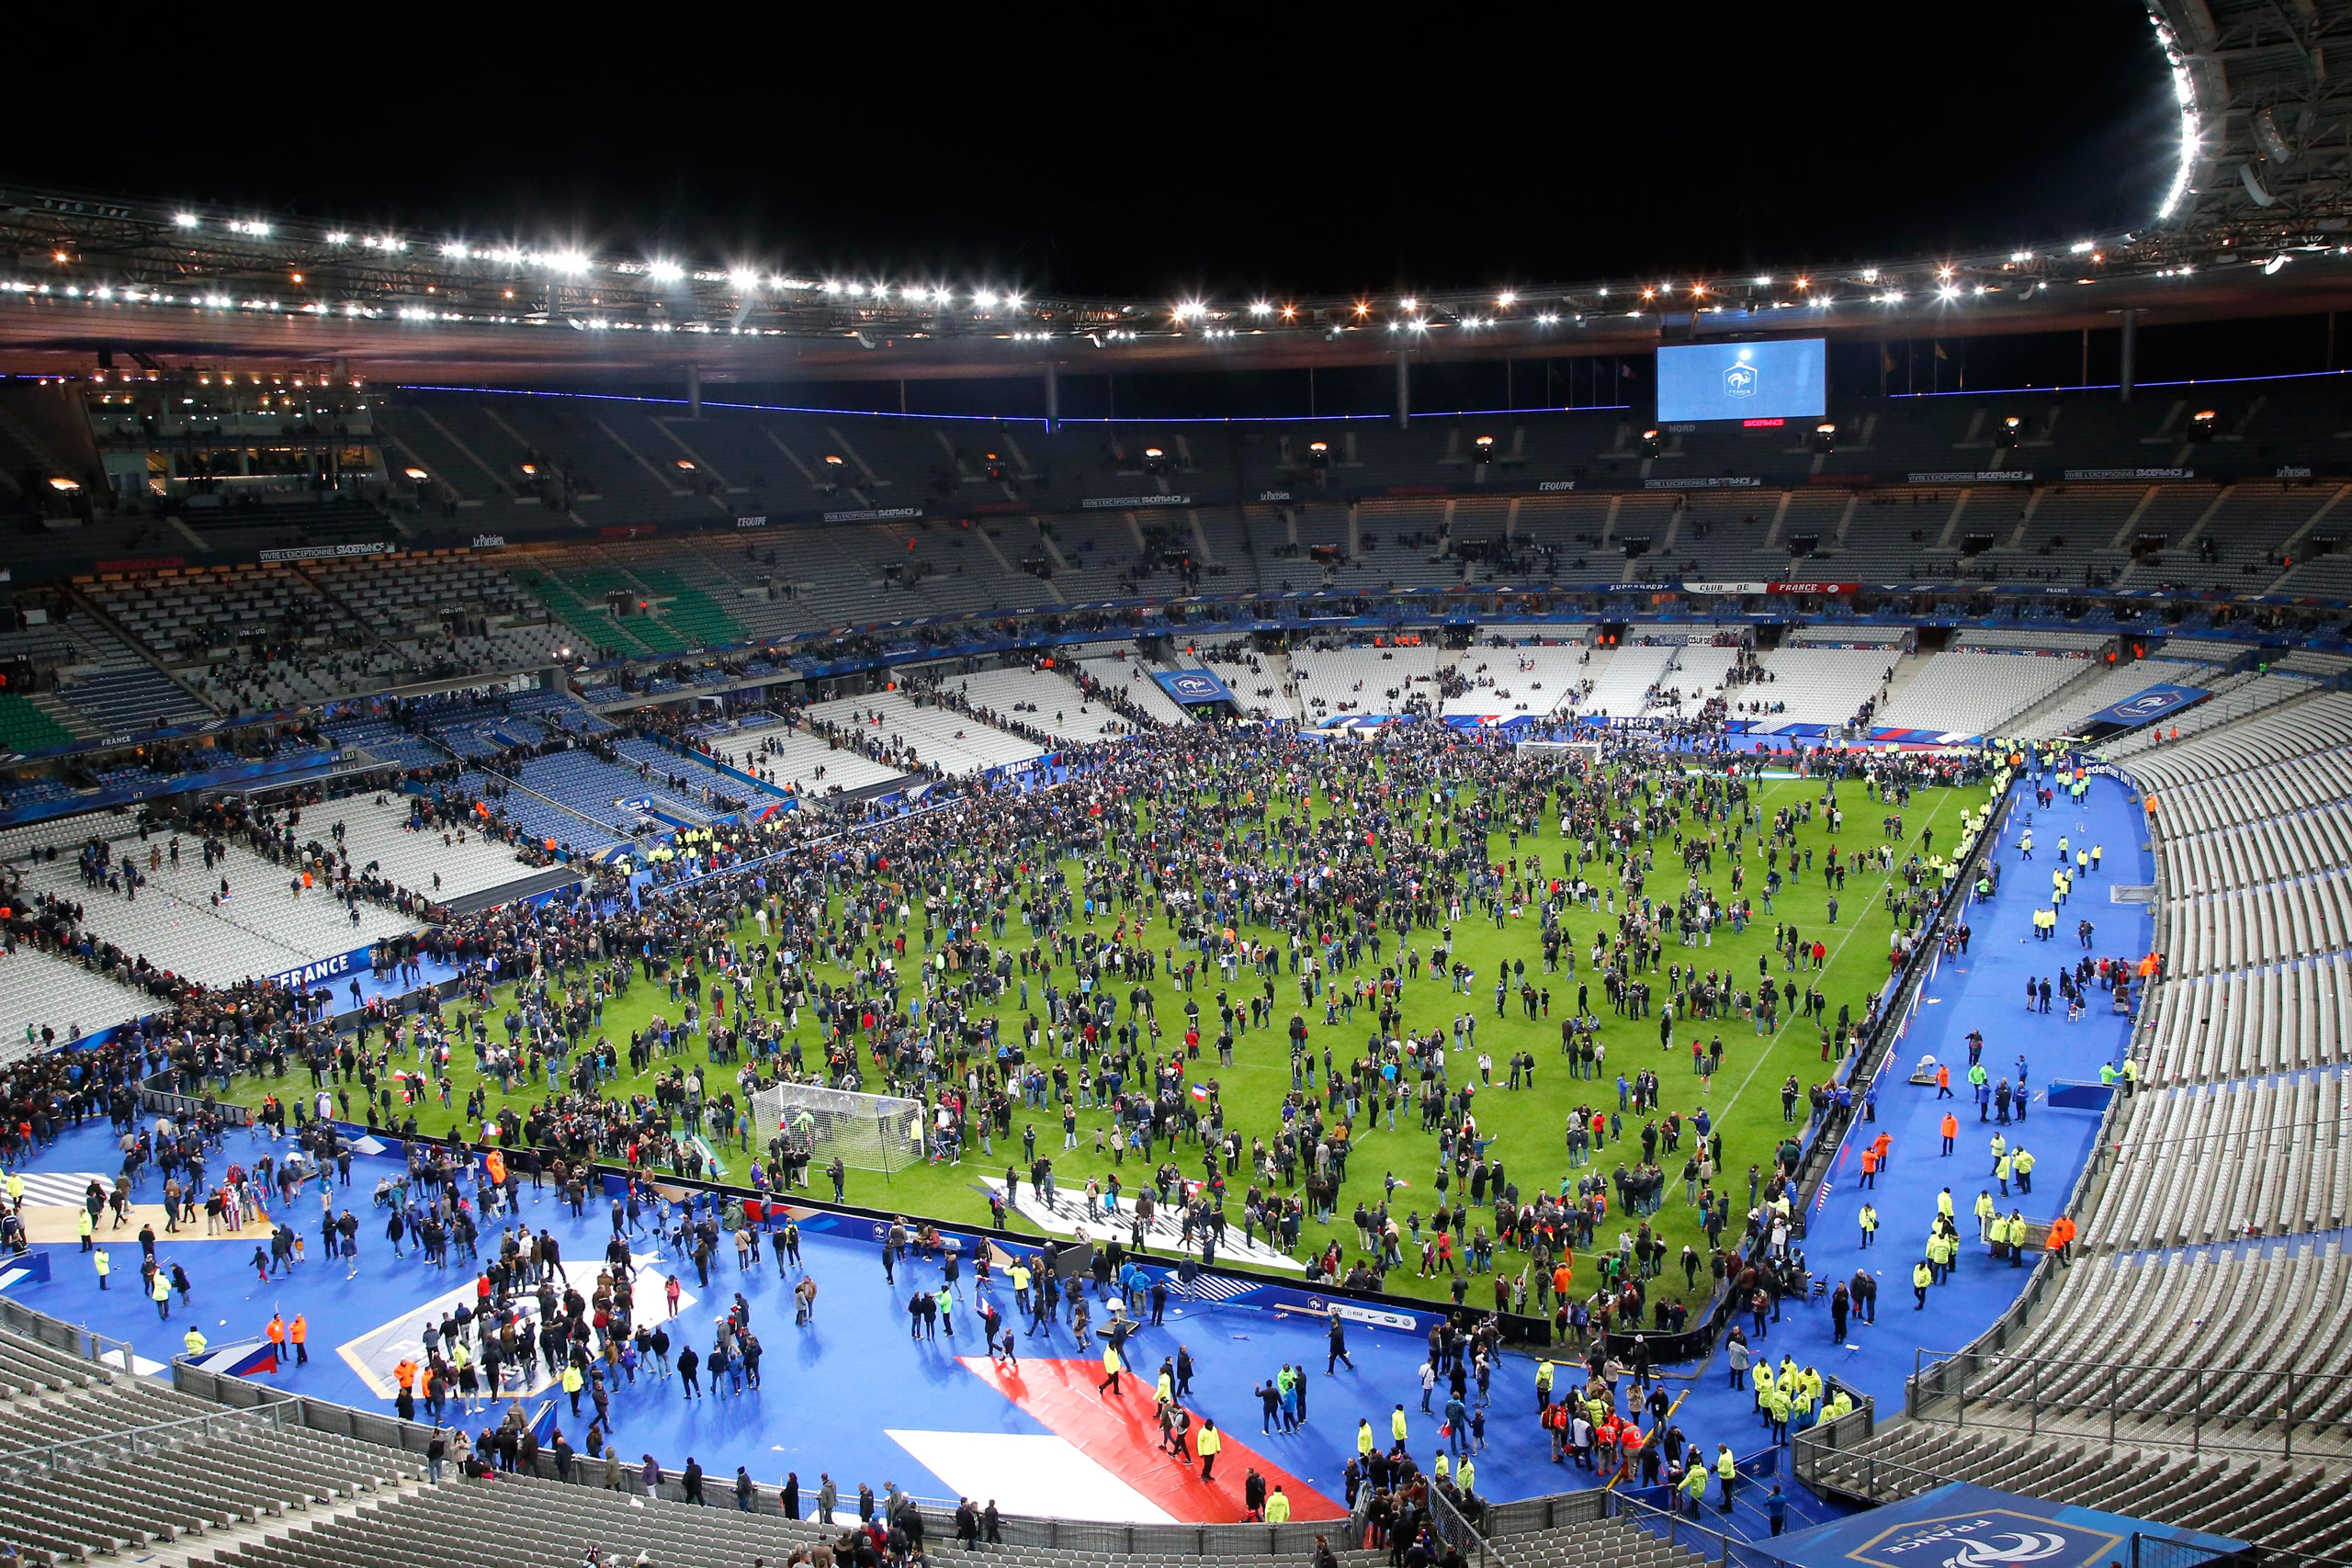 Spectators invade the pitch of the Stade de France stadium after the international friendly soccer France against Germany in Saint Denis, outside Paris on Nov. 13, 2015.